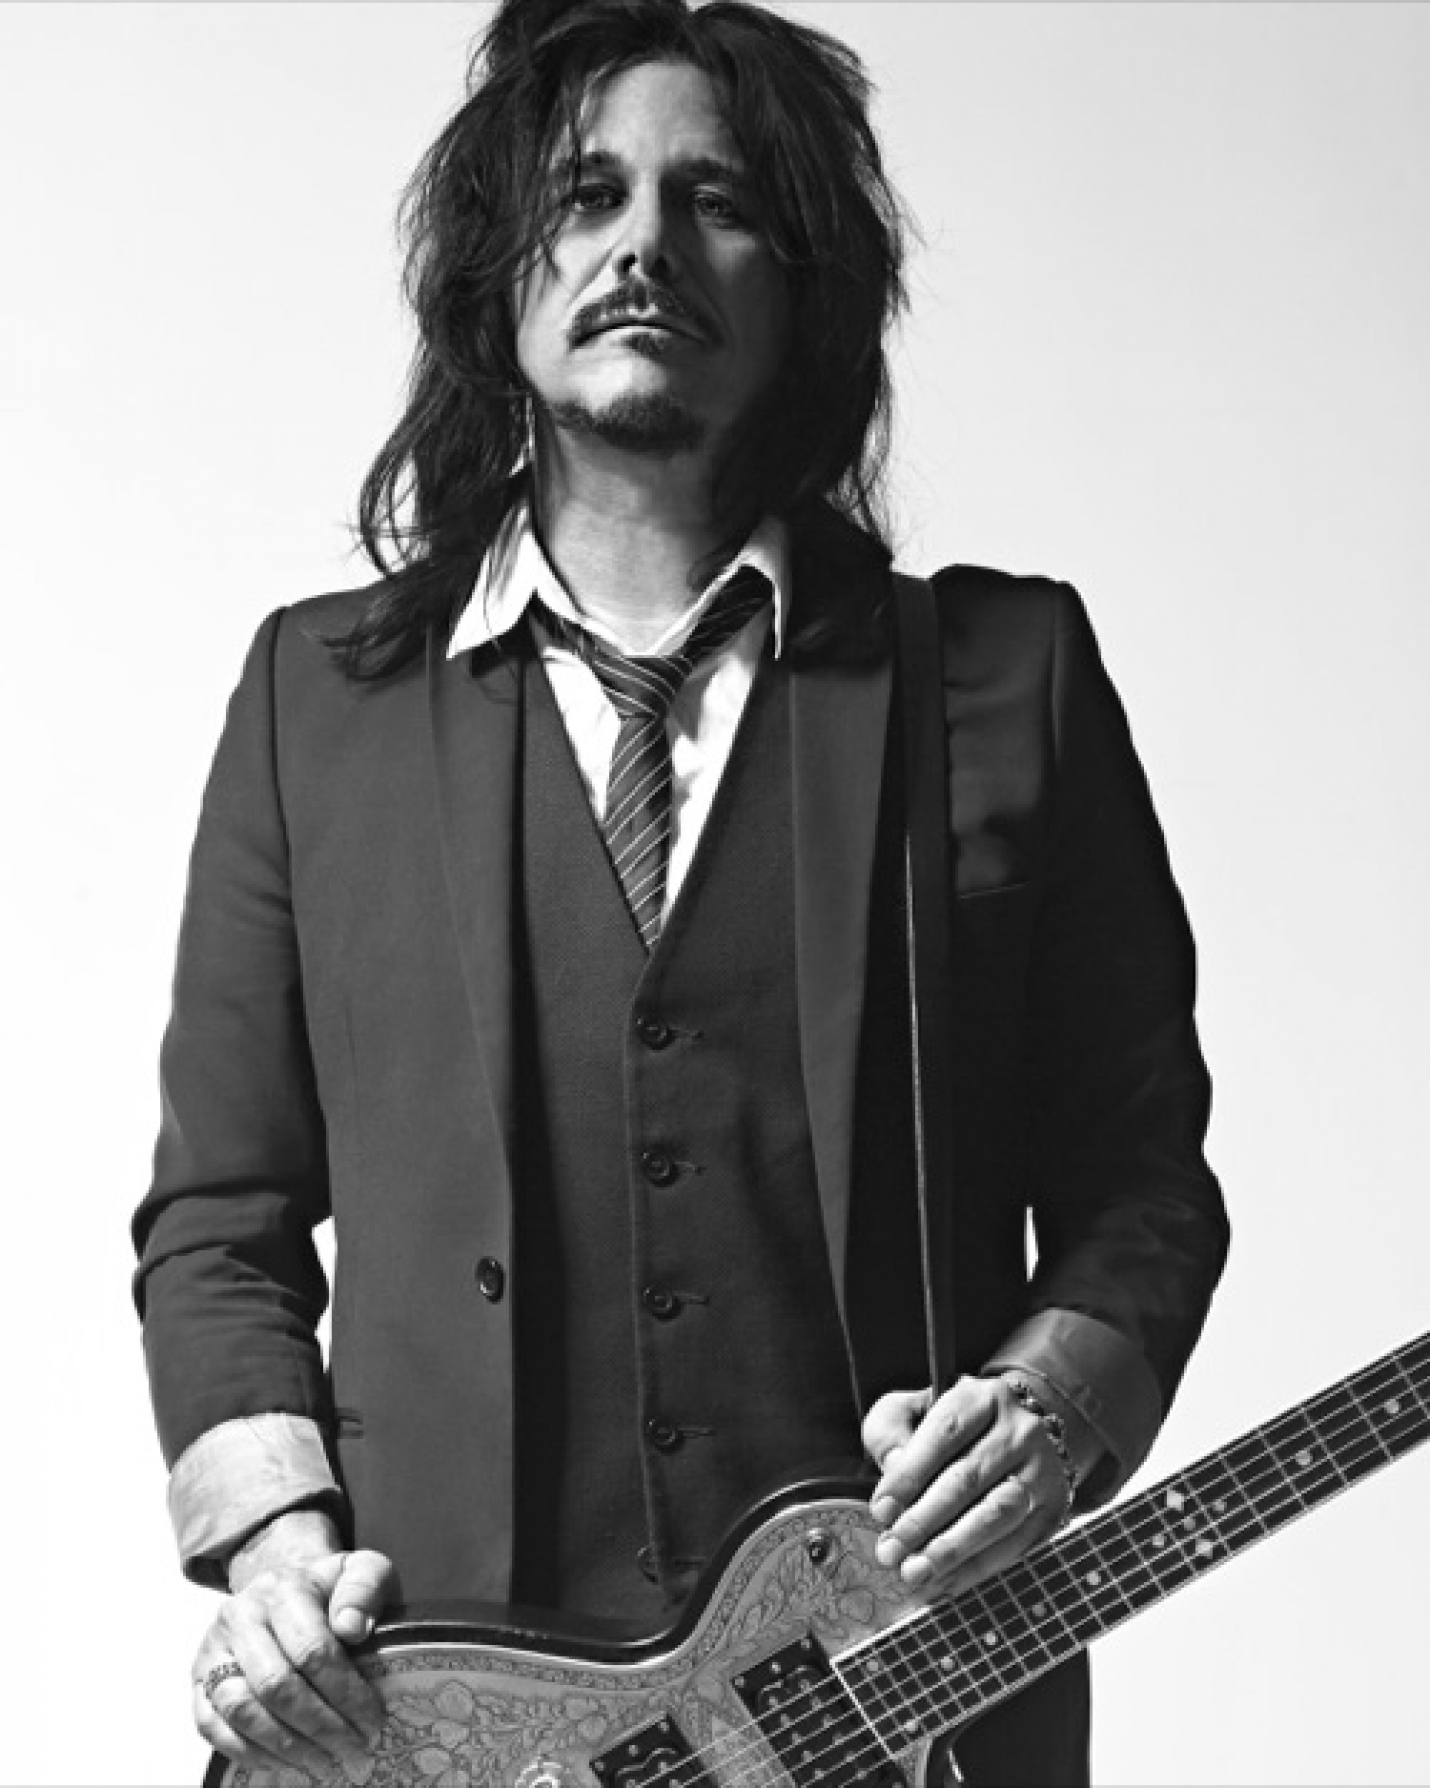 GILBY CLARKE Signs Global Deal with Golden Robot Records